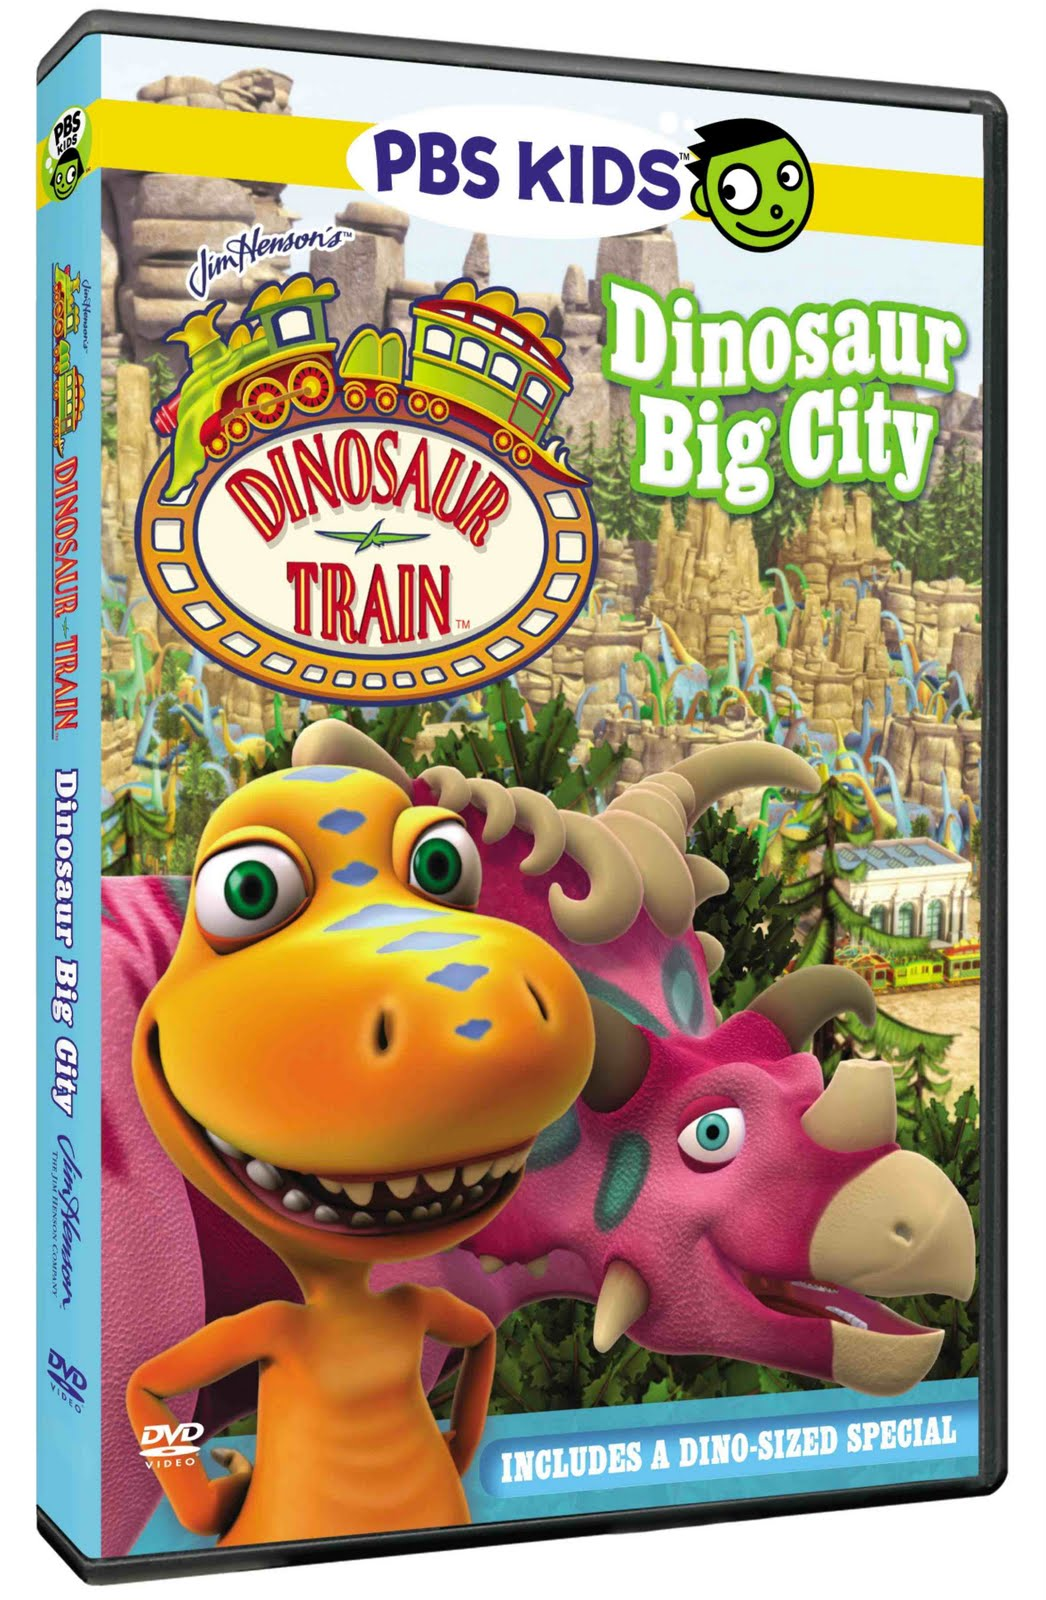 Dinosaur Train Coloring Pages Shiny. dinosaur train presents ... | 1600x1046